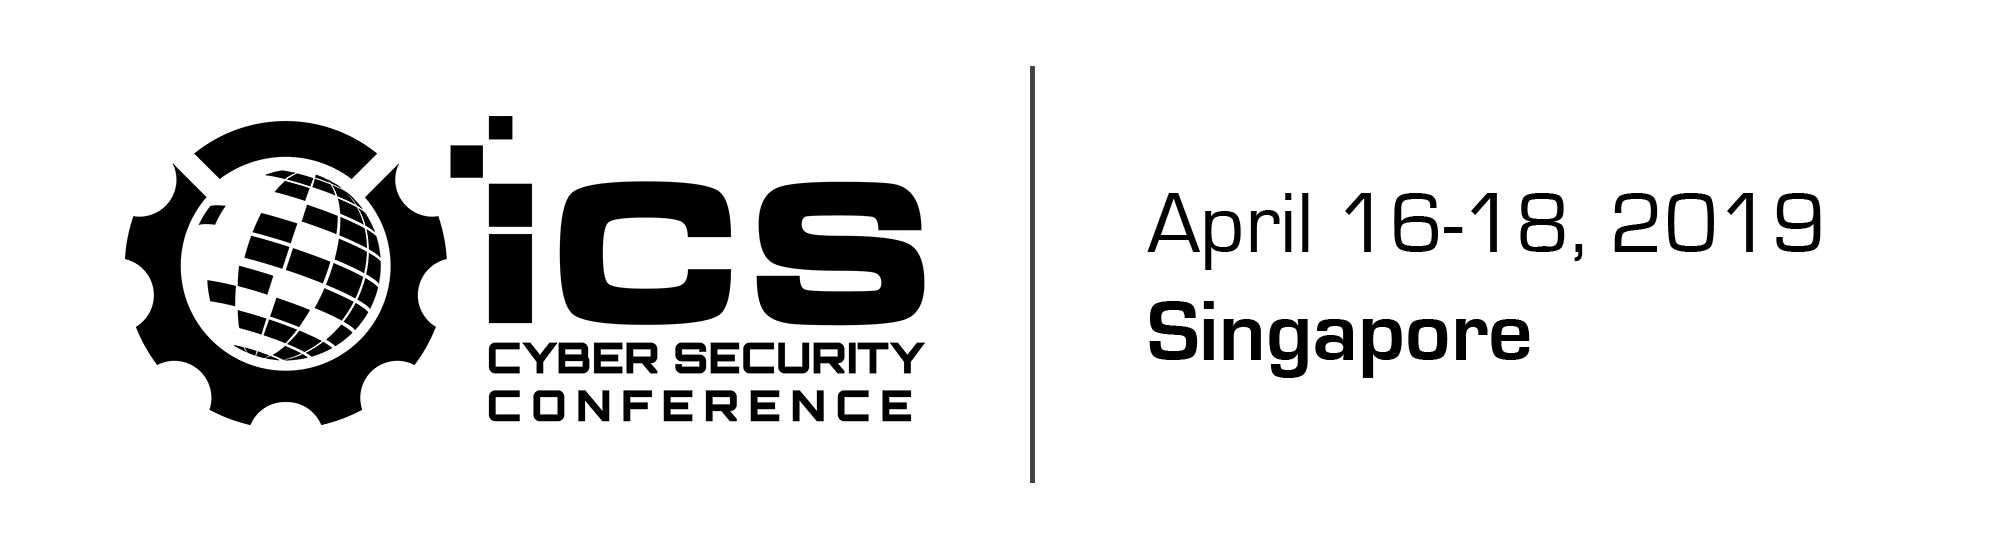 Industrial Control Systems (ICS) Cyber Security Conference (APAC)